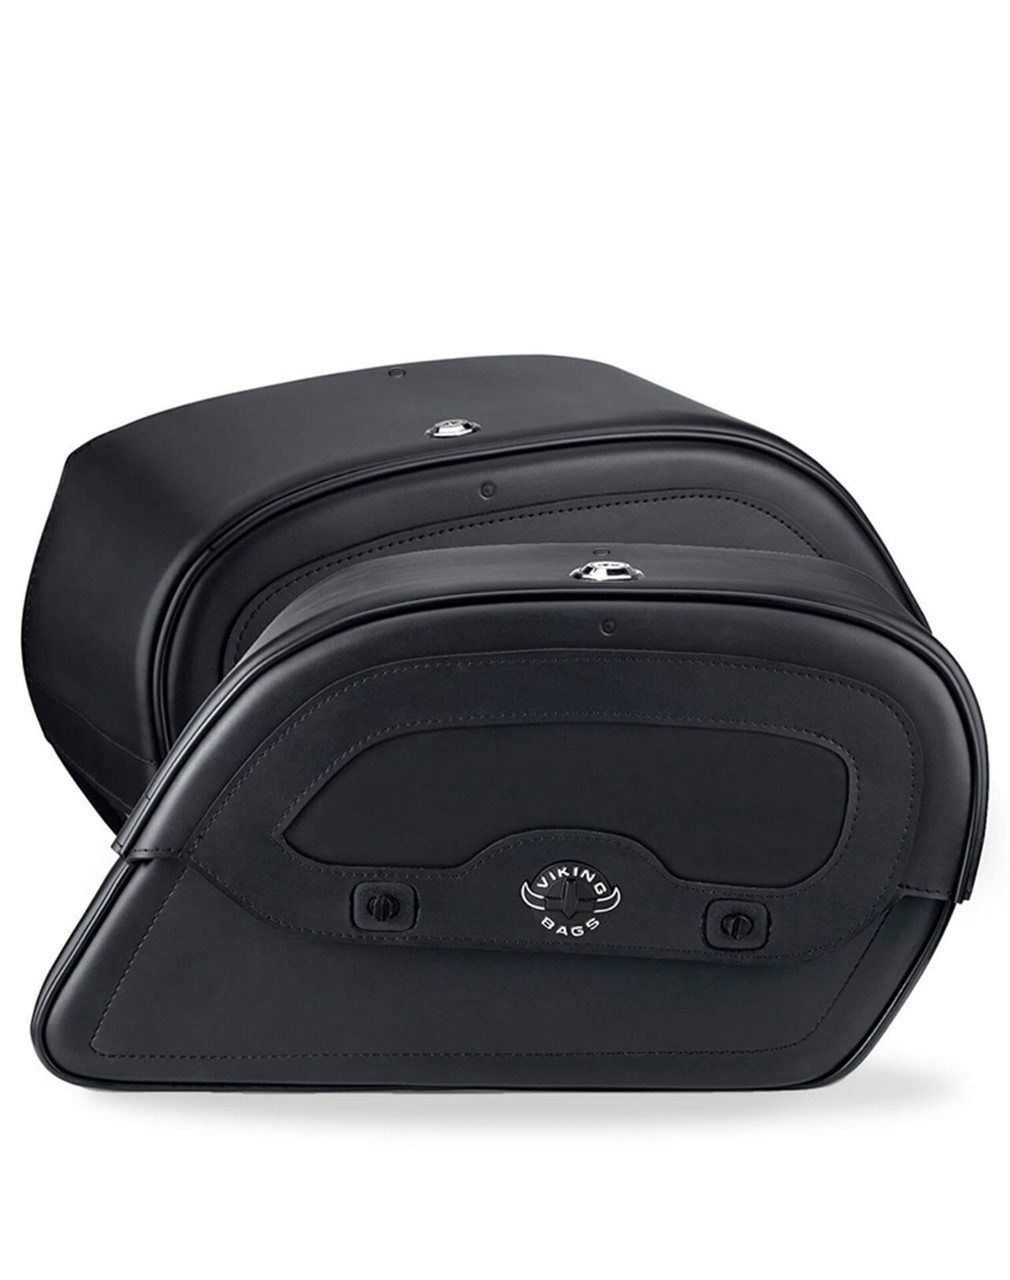 Viking Warrior Series Medium Saddlebags For Harley Dyna Low Rider FXDL Both Bags View